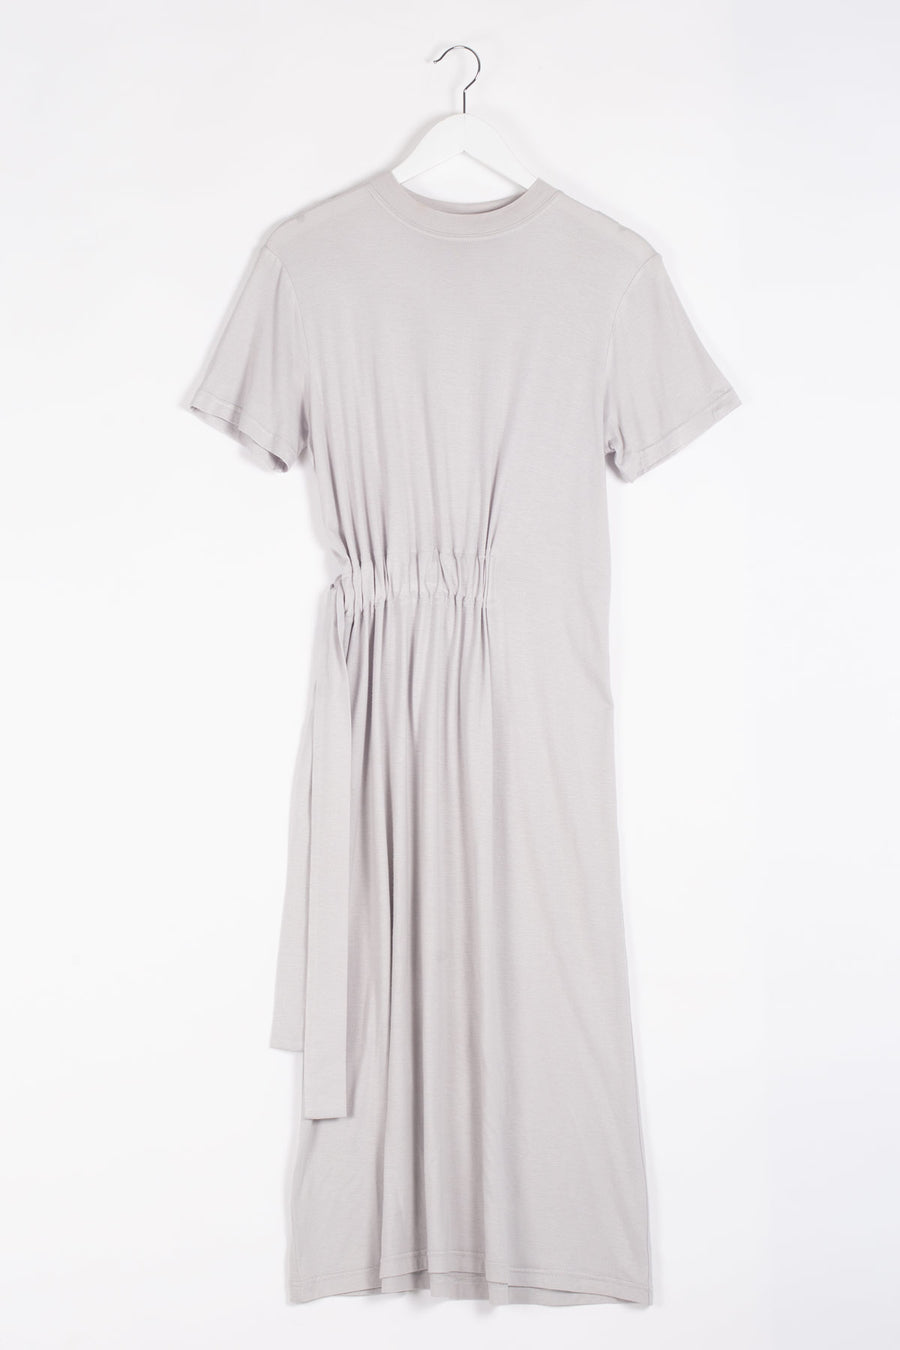 BAM Bamboo Belted Midi Dress - Grey